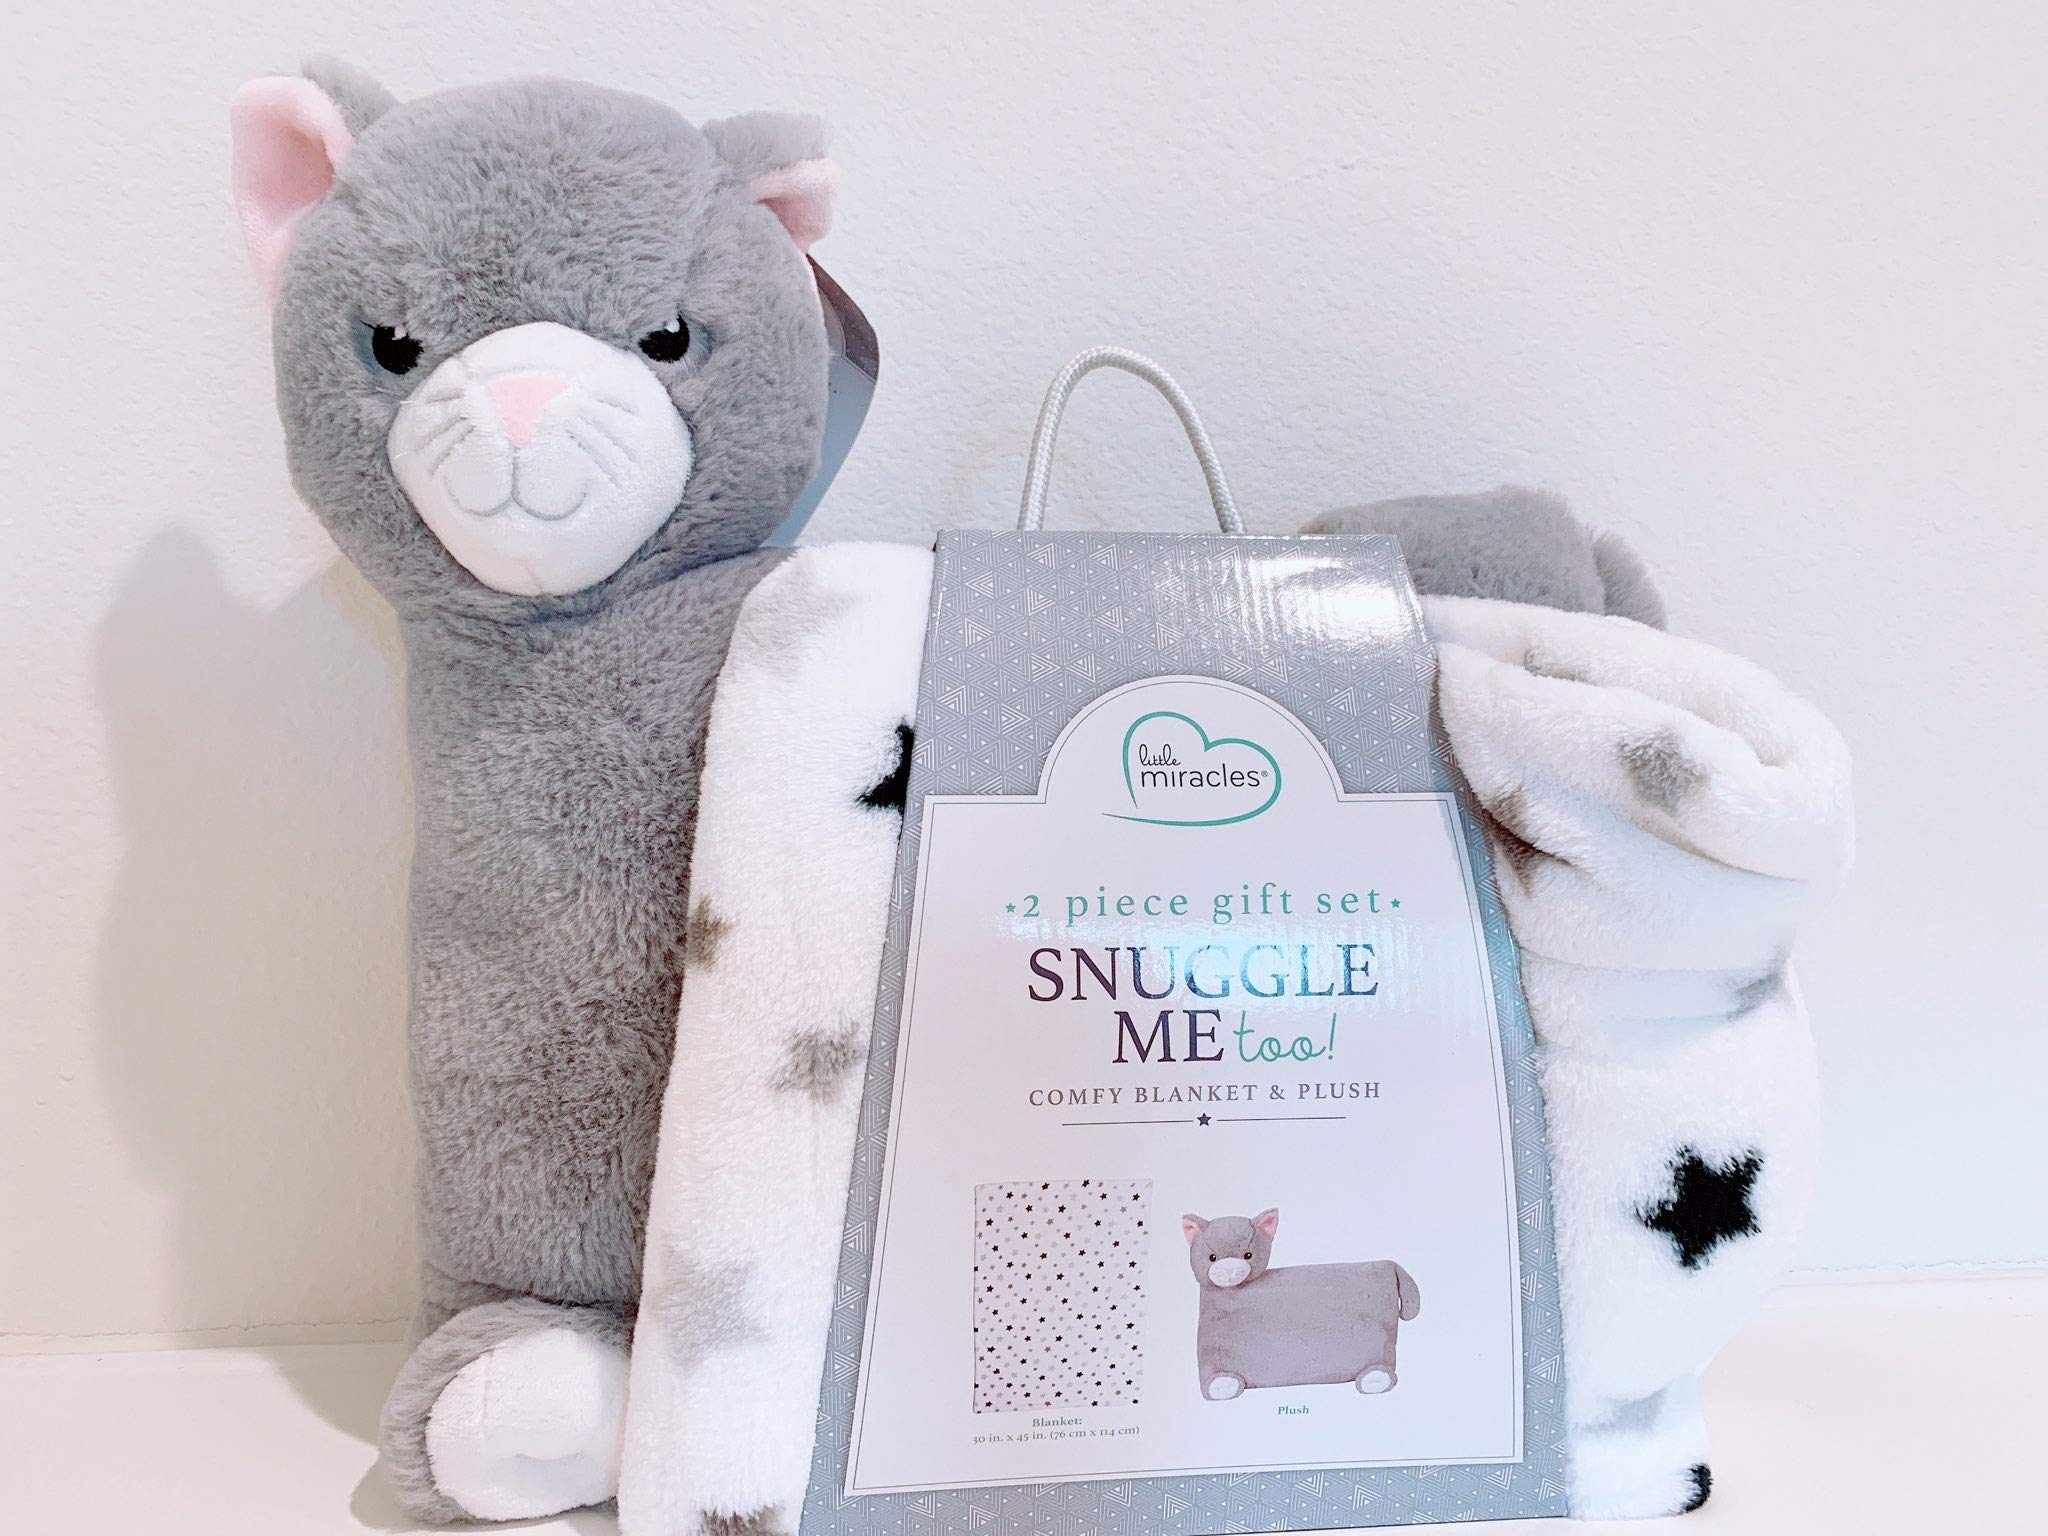 Little Miracles Snuggle Me Too! 2-Piece Comfy Blanket and Plush Gift Set - Cat by Little Miracles